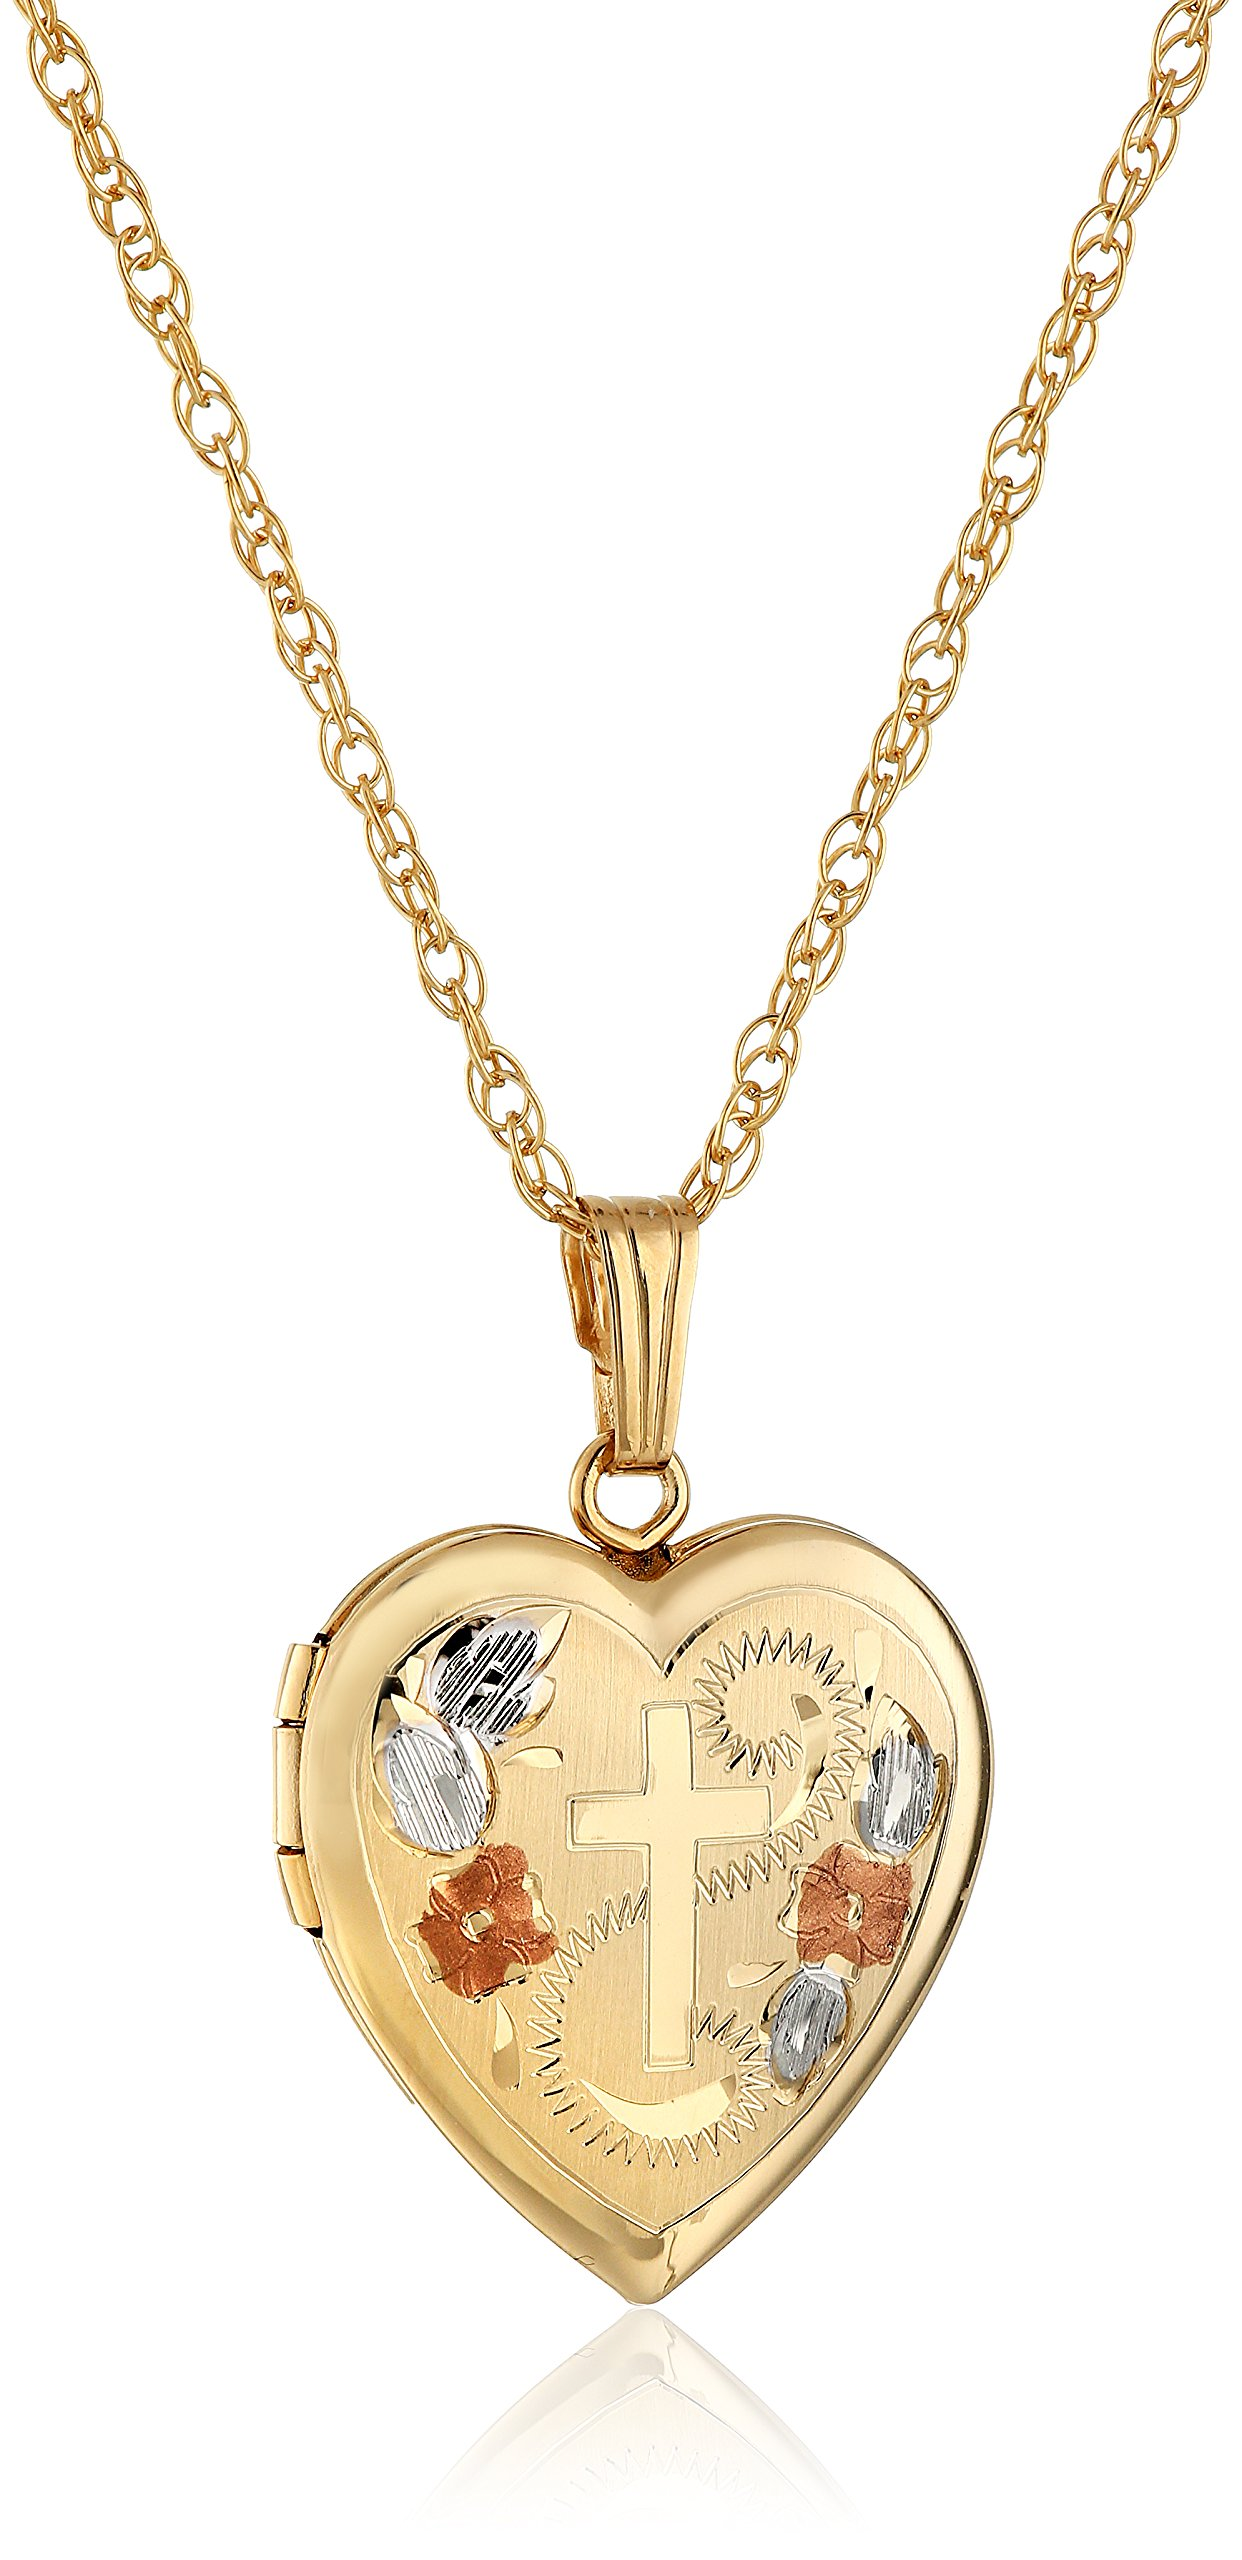 14k Yellow Gold-Filled Engraved Cross Heart Locket, 18''